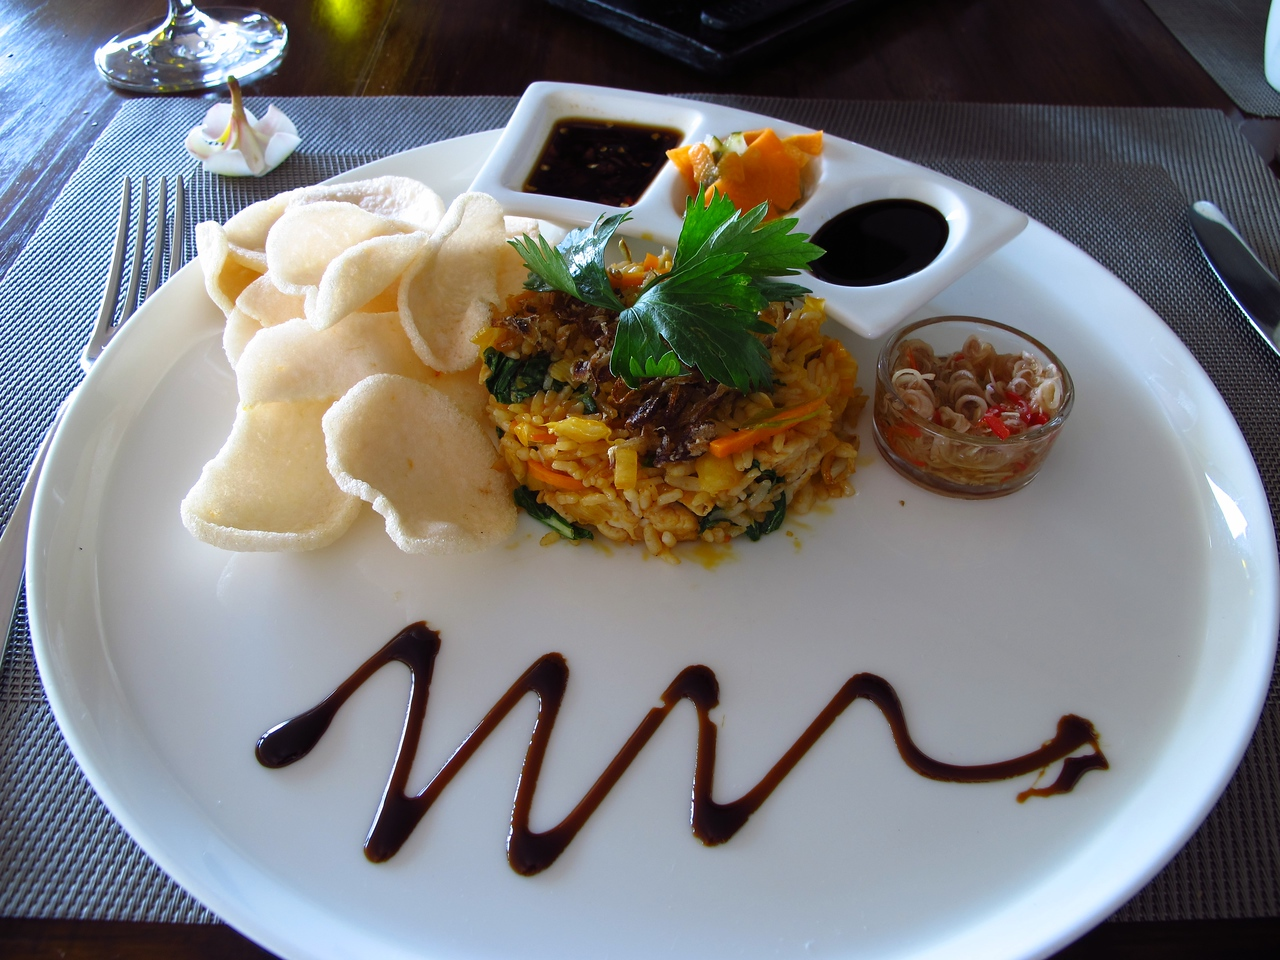 While you can have just about any western style breakfast item….when in Indonesia, do as Indonesian's do…This is Nasi Goreng.